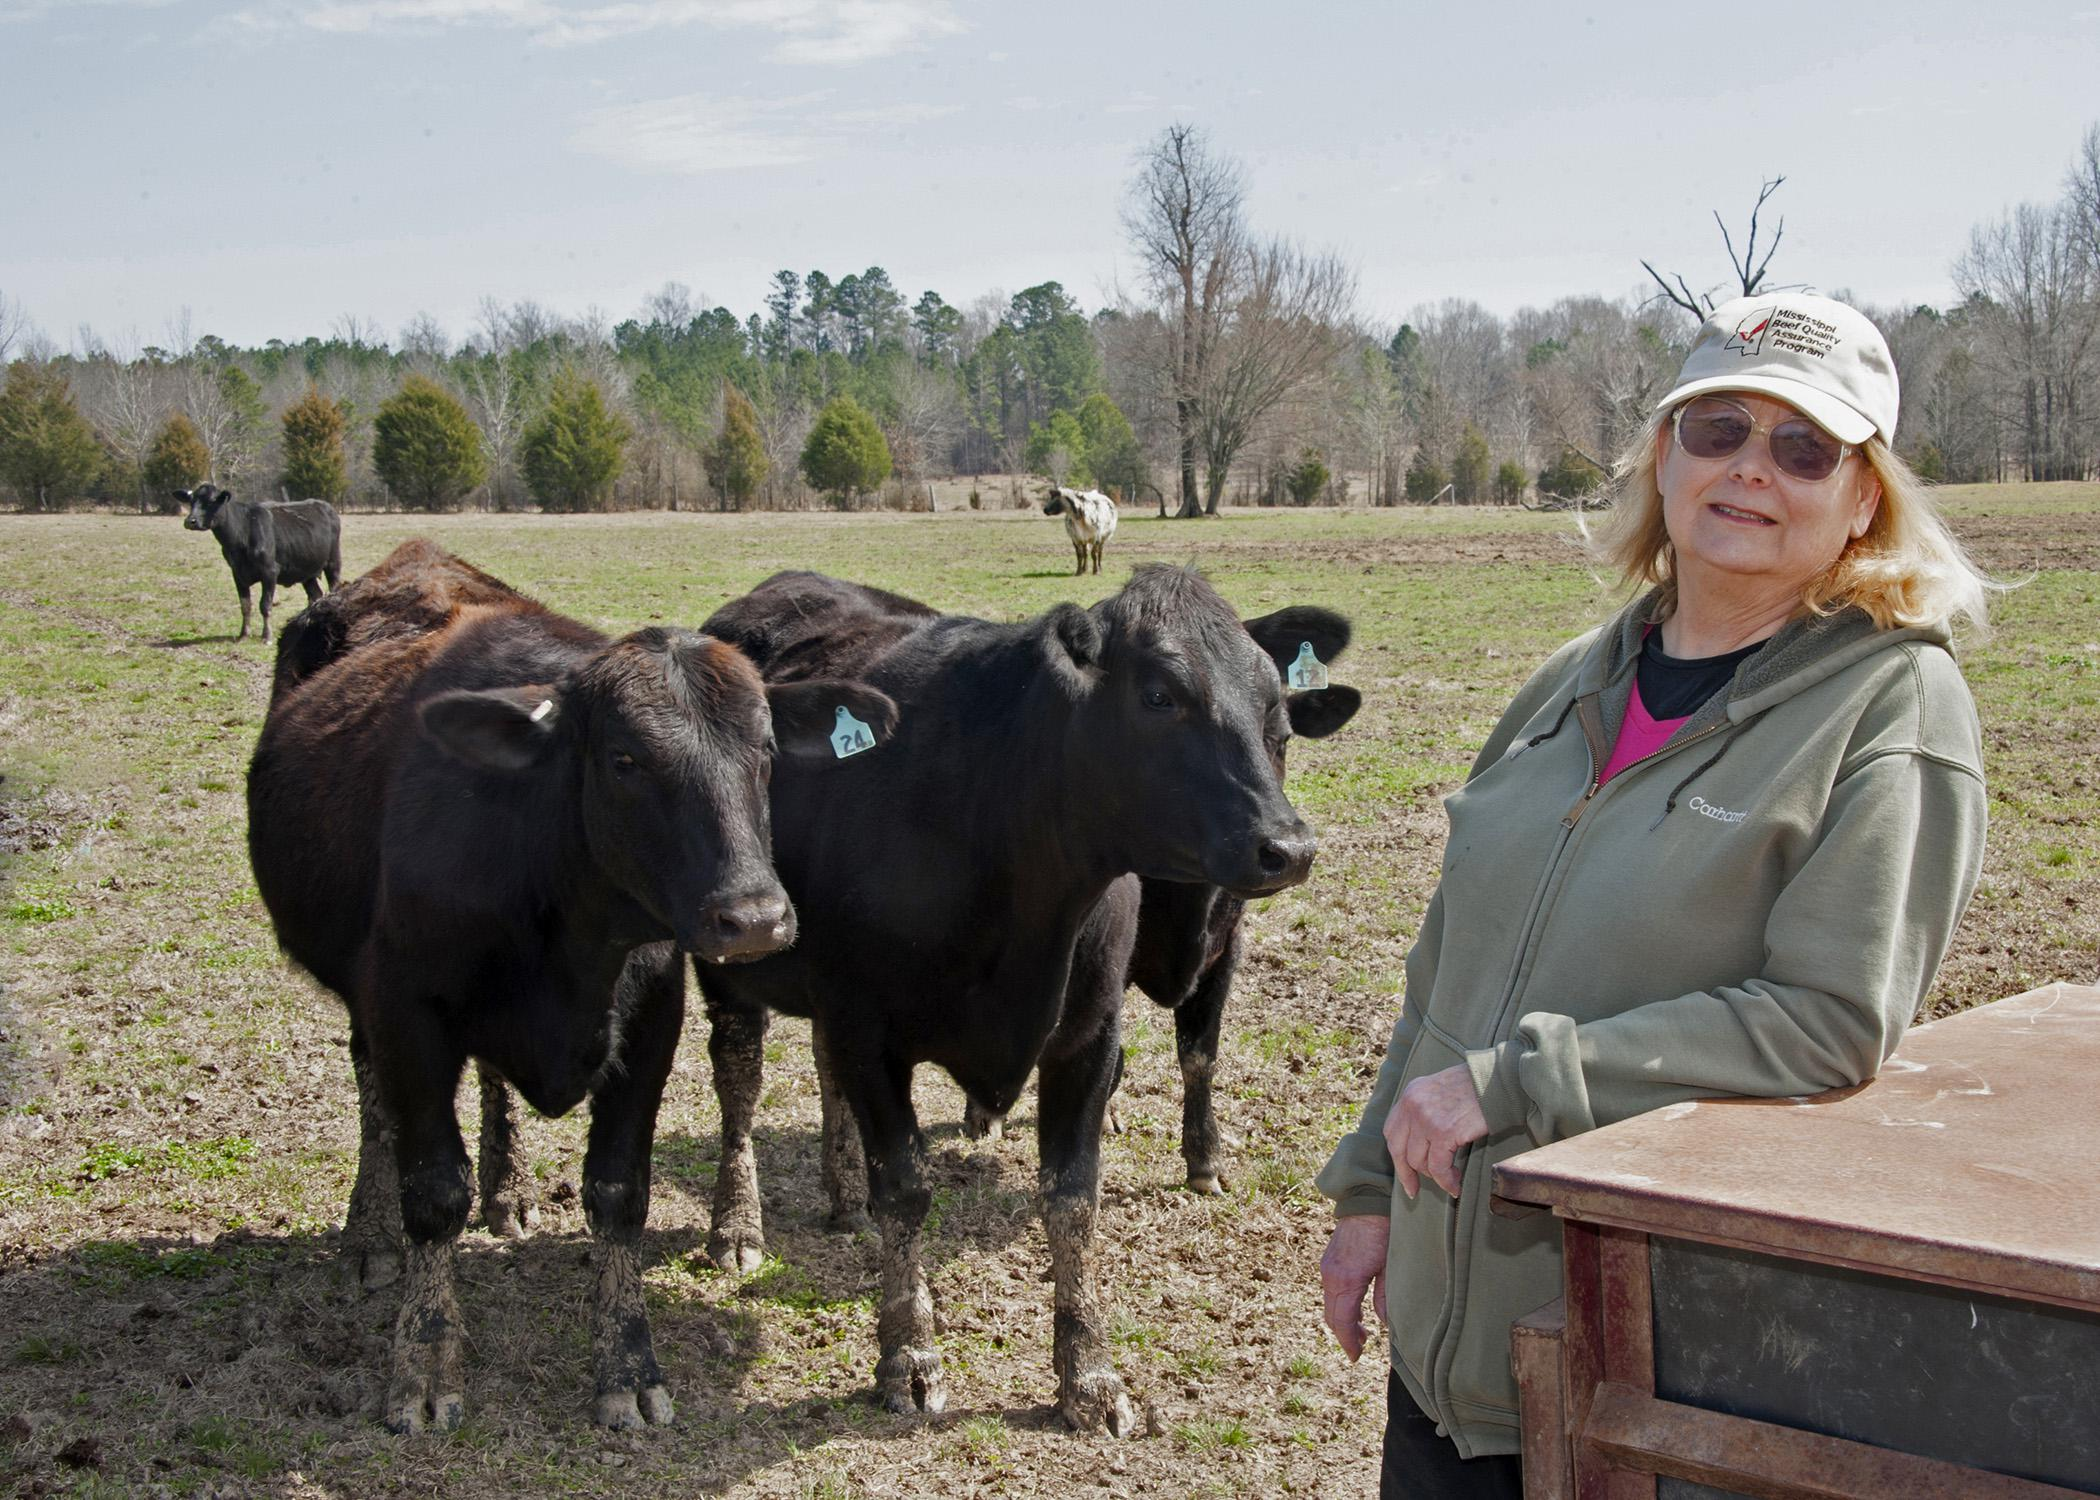 Mary Jane Coign runs a cow-calf operation in Starkville. She has overcome challenges to make an impact as a woman in agriculture. (Photo by MSU Ag Communications/Kat Lawrence)